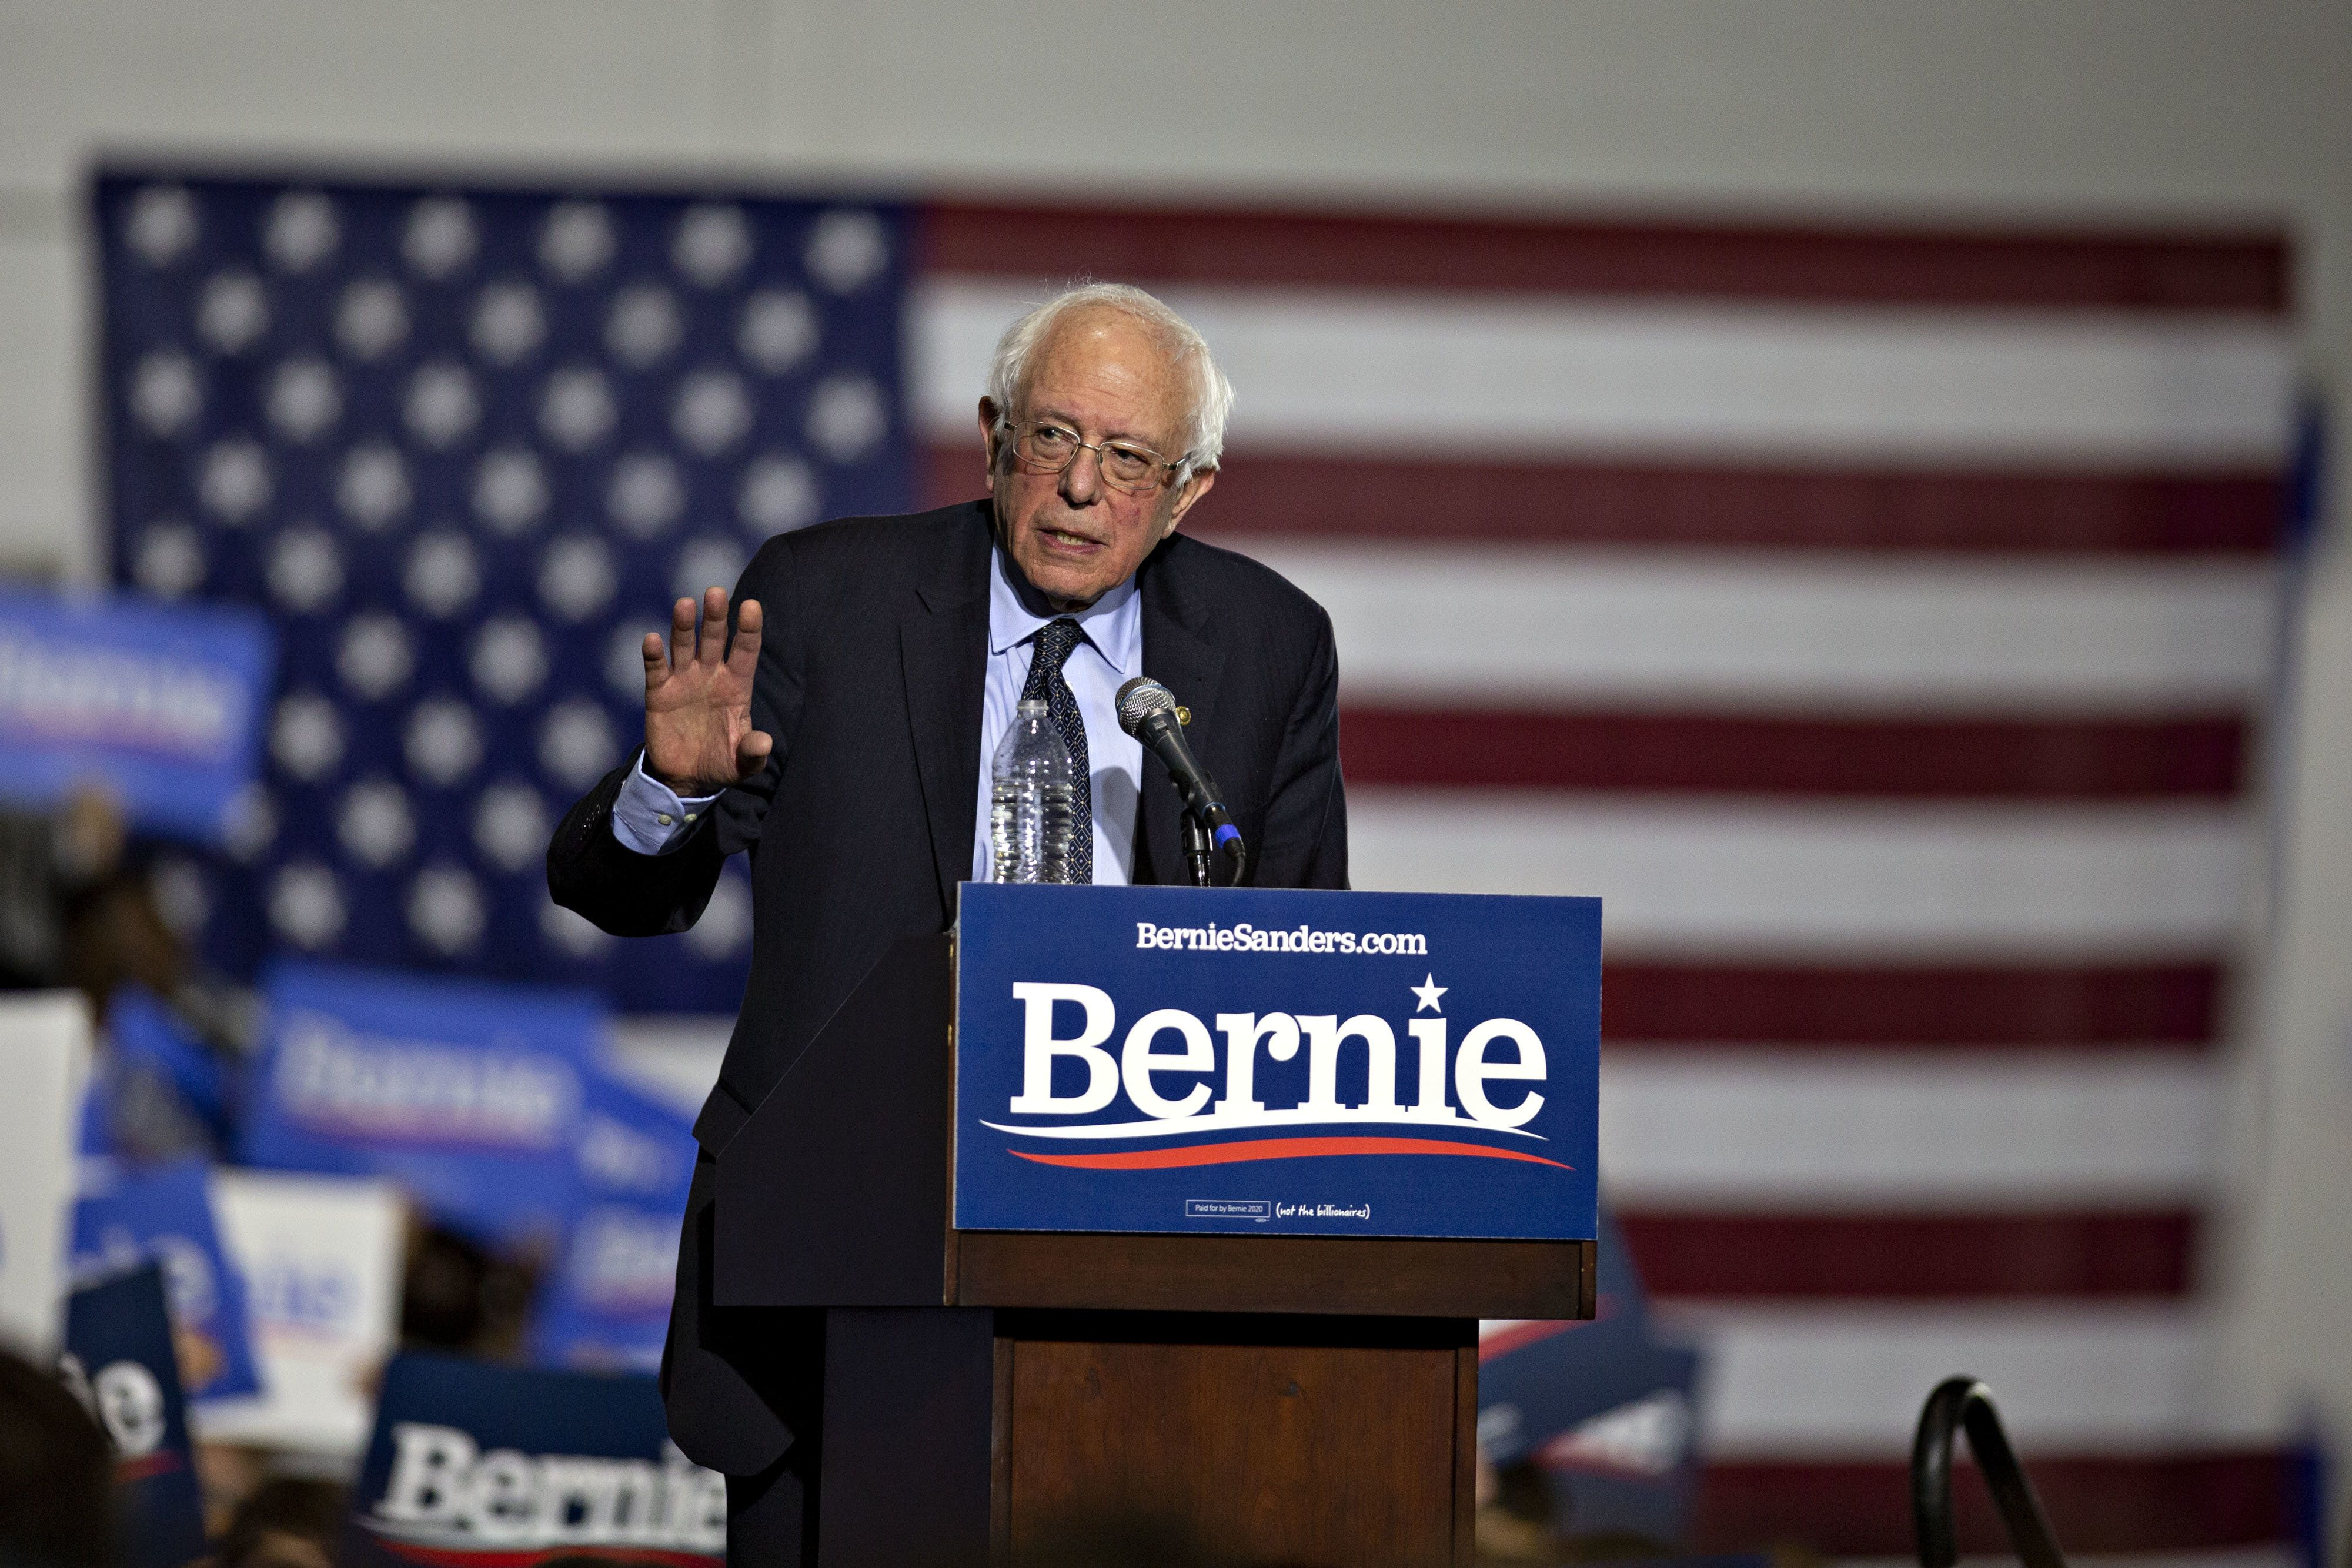 Senator Bernie Sanders, an Independent from Vermont and 2020 presidential candidate, speaks during a campaign rally in Chicago, Illinois, U.S., on Sunday, March 3, 2019. The Vermont senator has positioned himself in opposition to Trump administration policies from immigration to climate change, and many of his populist ideas have been embraced by the mainstream of the Democratic party. Photographer: Daniel Acker/Bloomberg via Getty Images